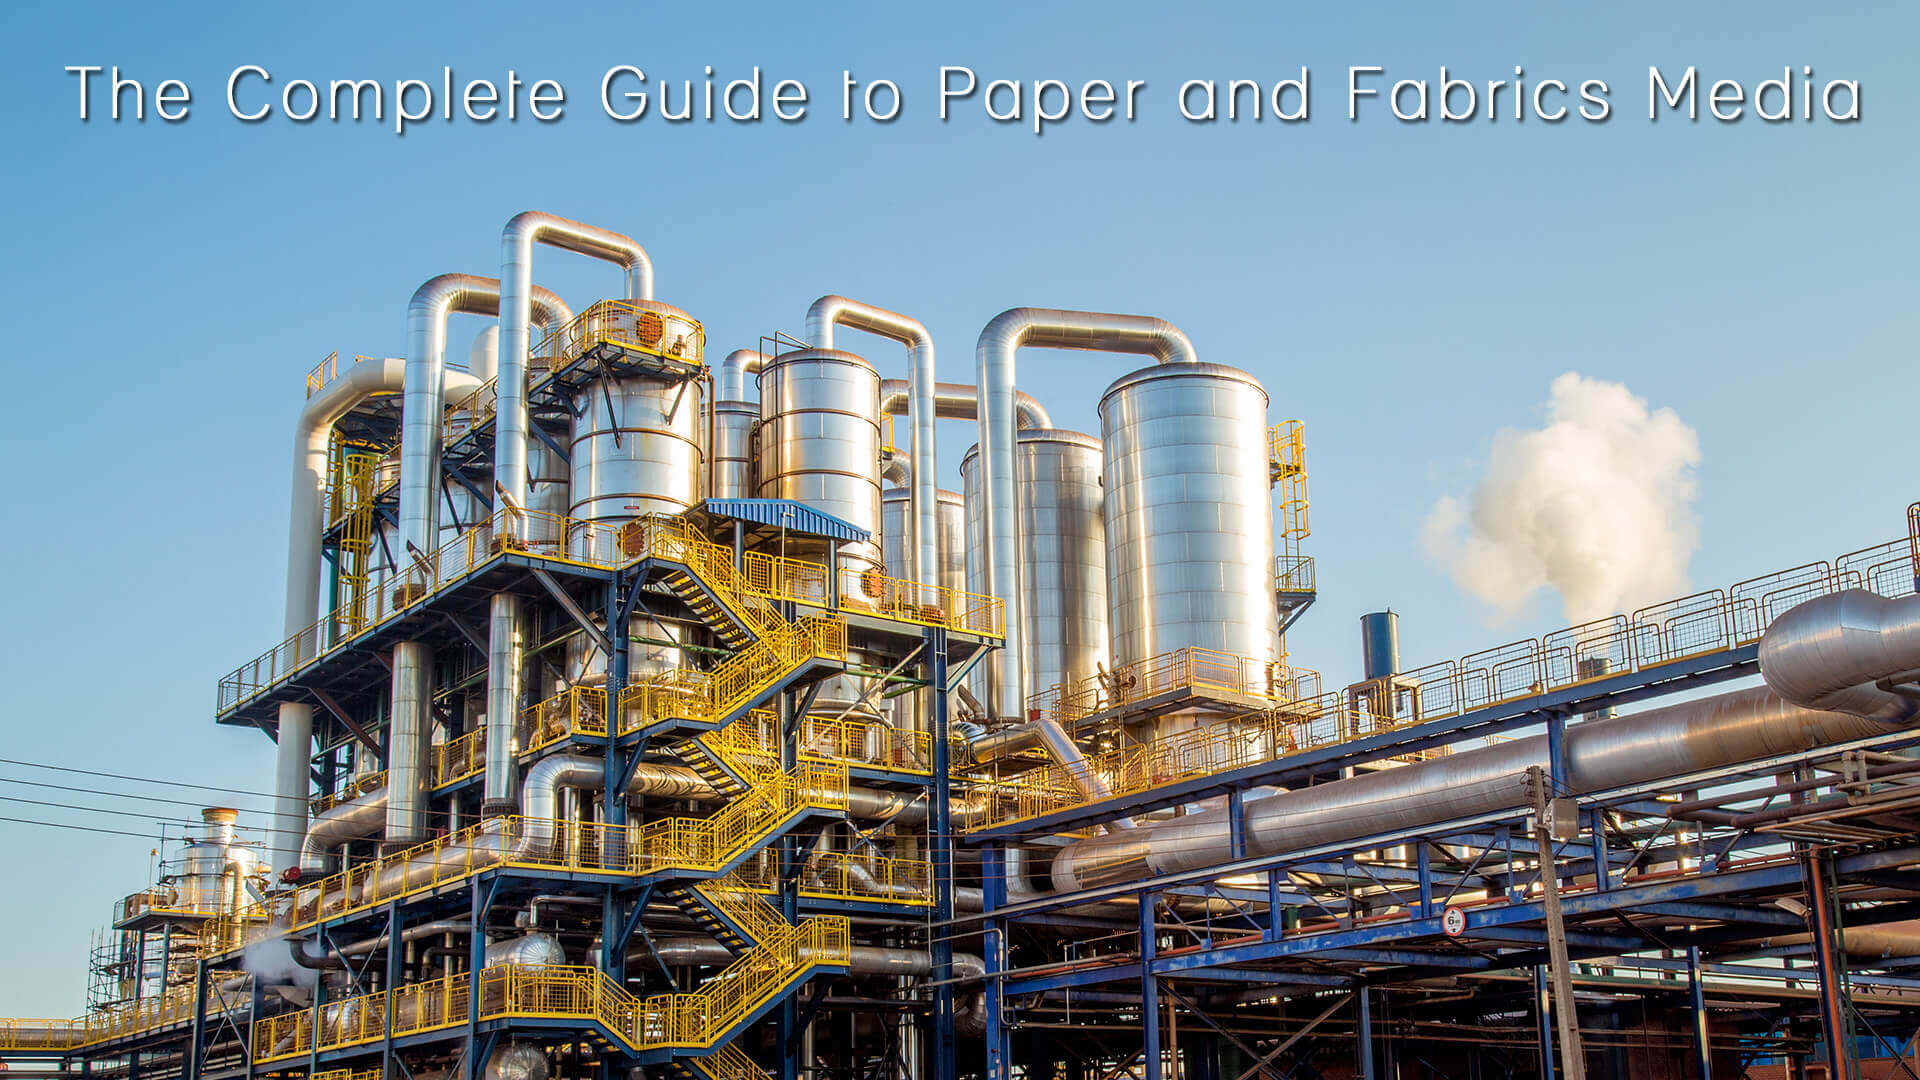 The Complete Guide to Paper and Fabrics Media